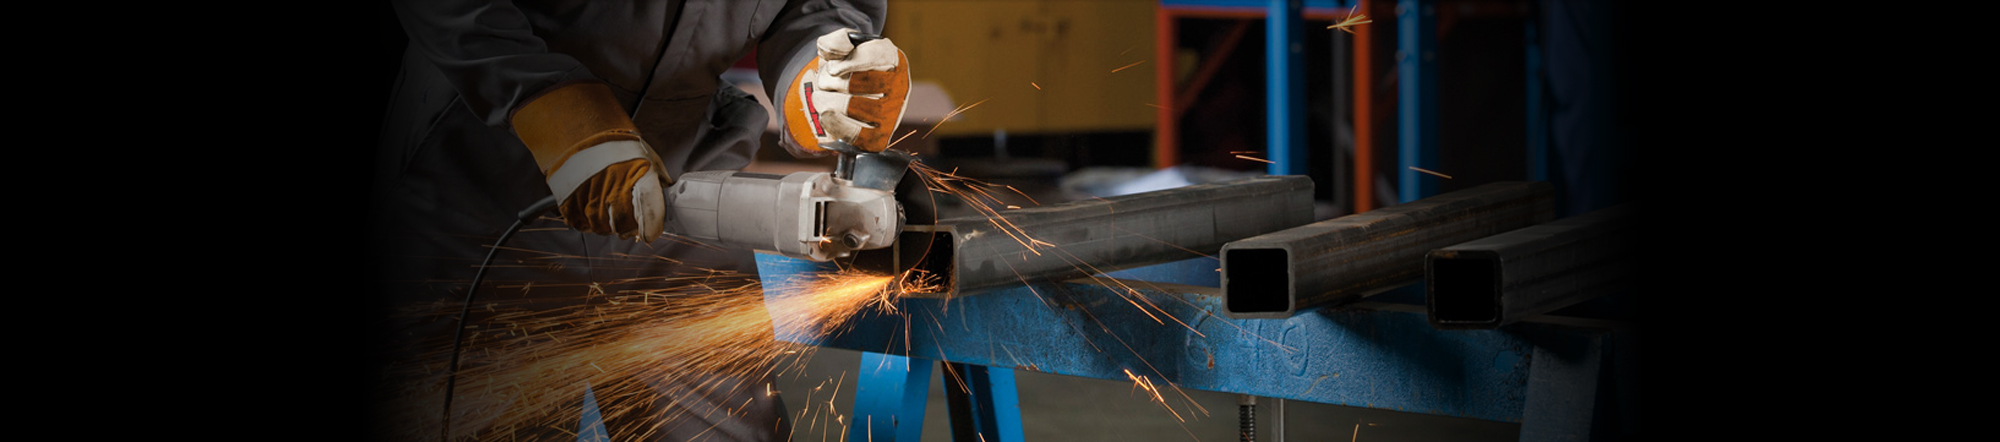 Abrasives in action